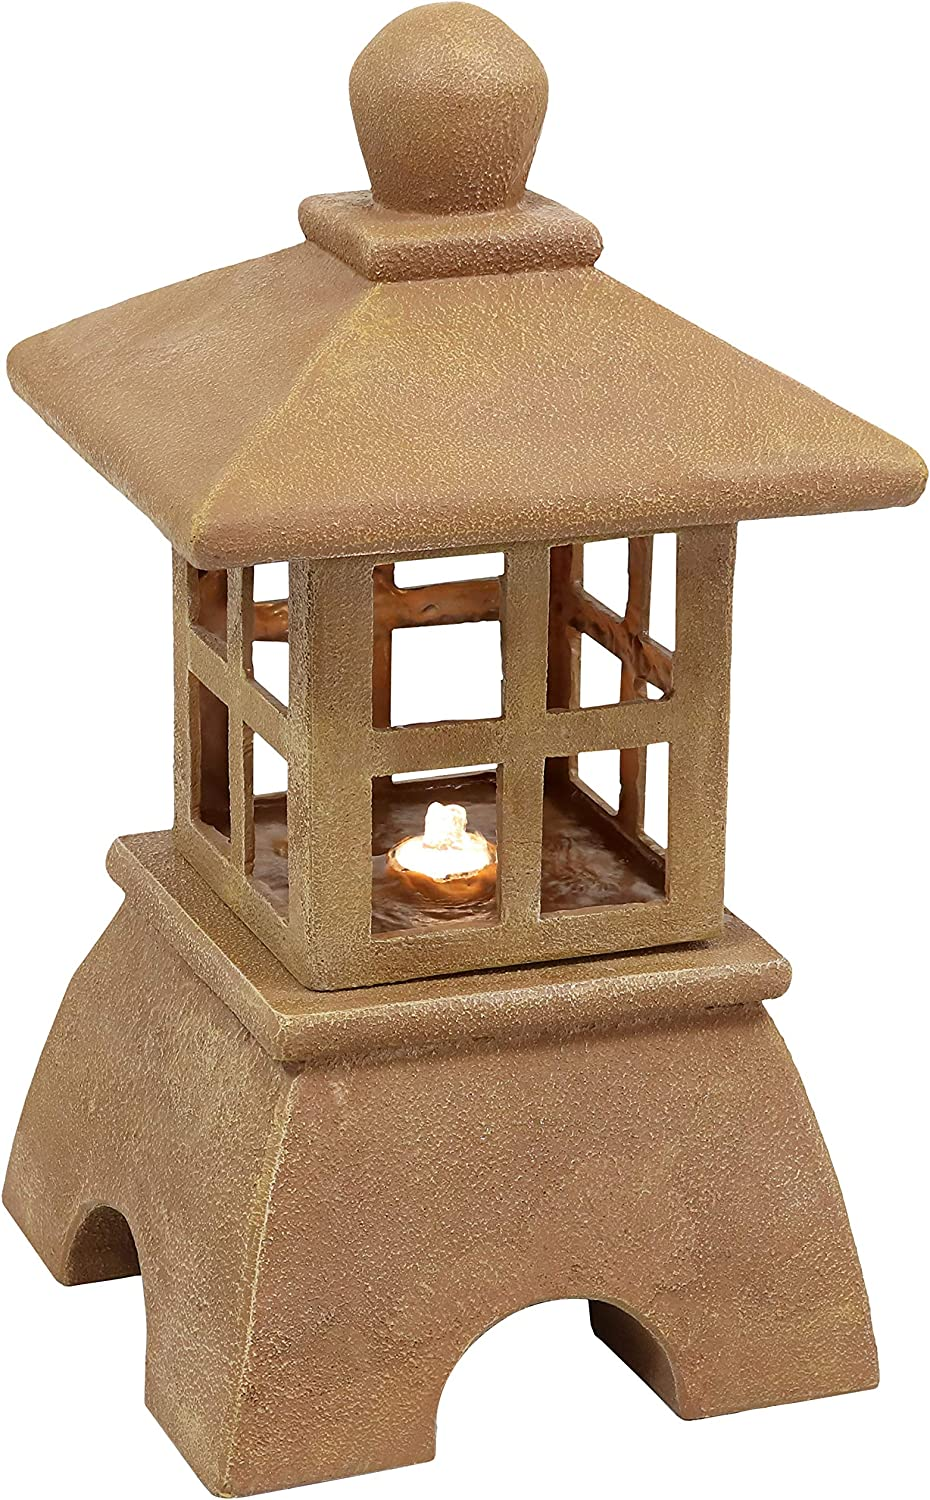 Sunnydaze Asian New Free Shipping Pagoda Outdoor Water with Fountain - Regular store LED Lights